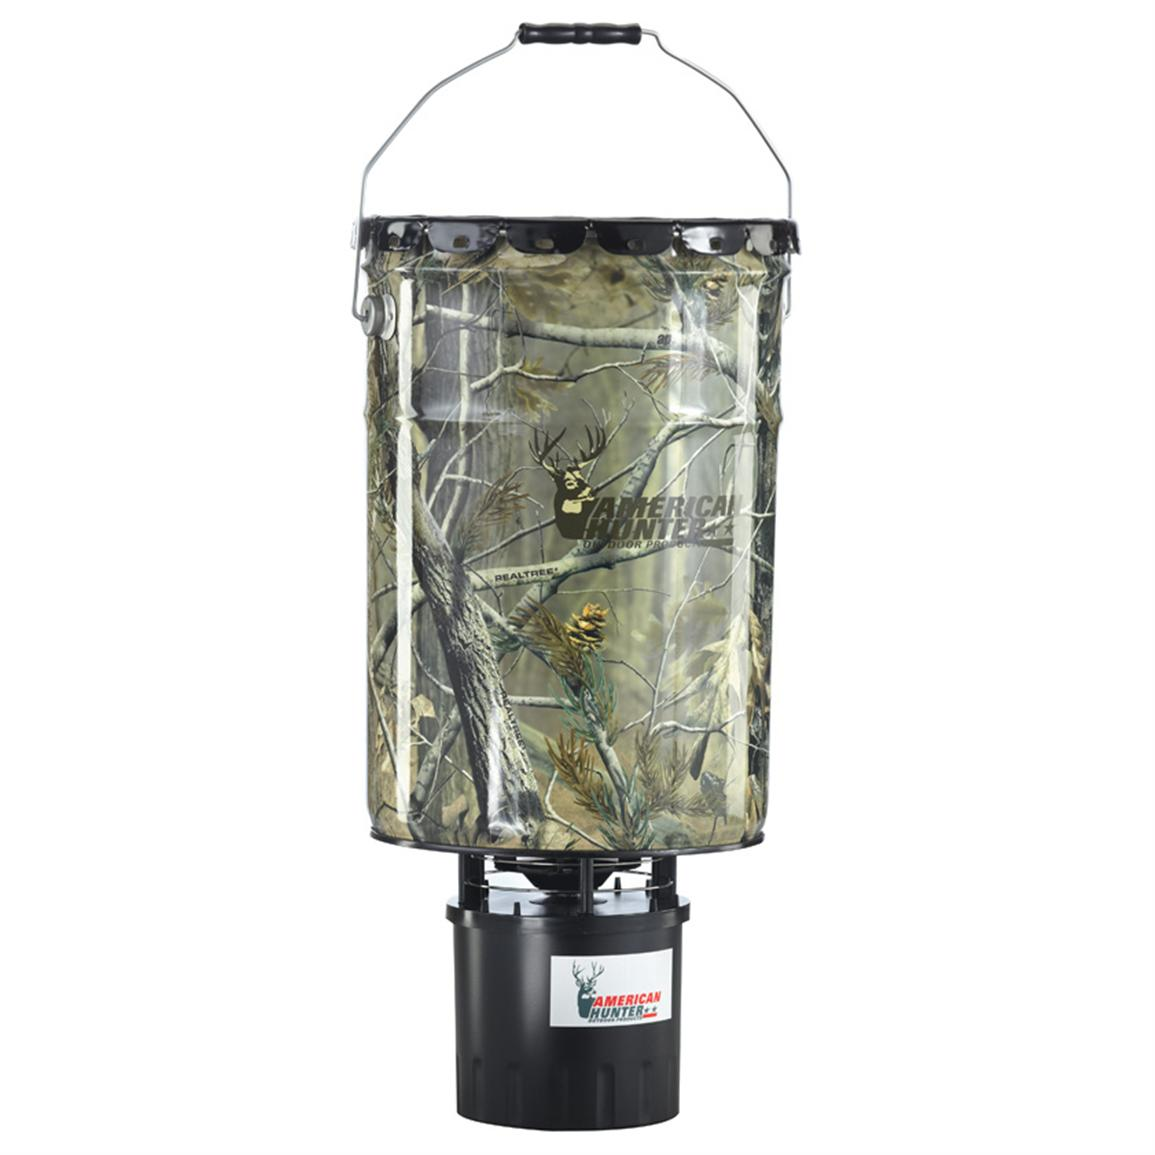 American Hunter 50 lb. Hanging Feeder, Realtree AP Camo